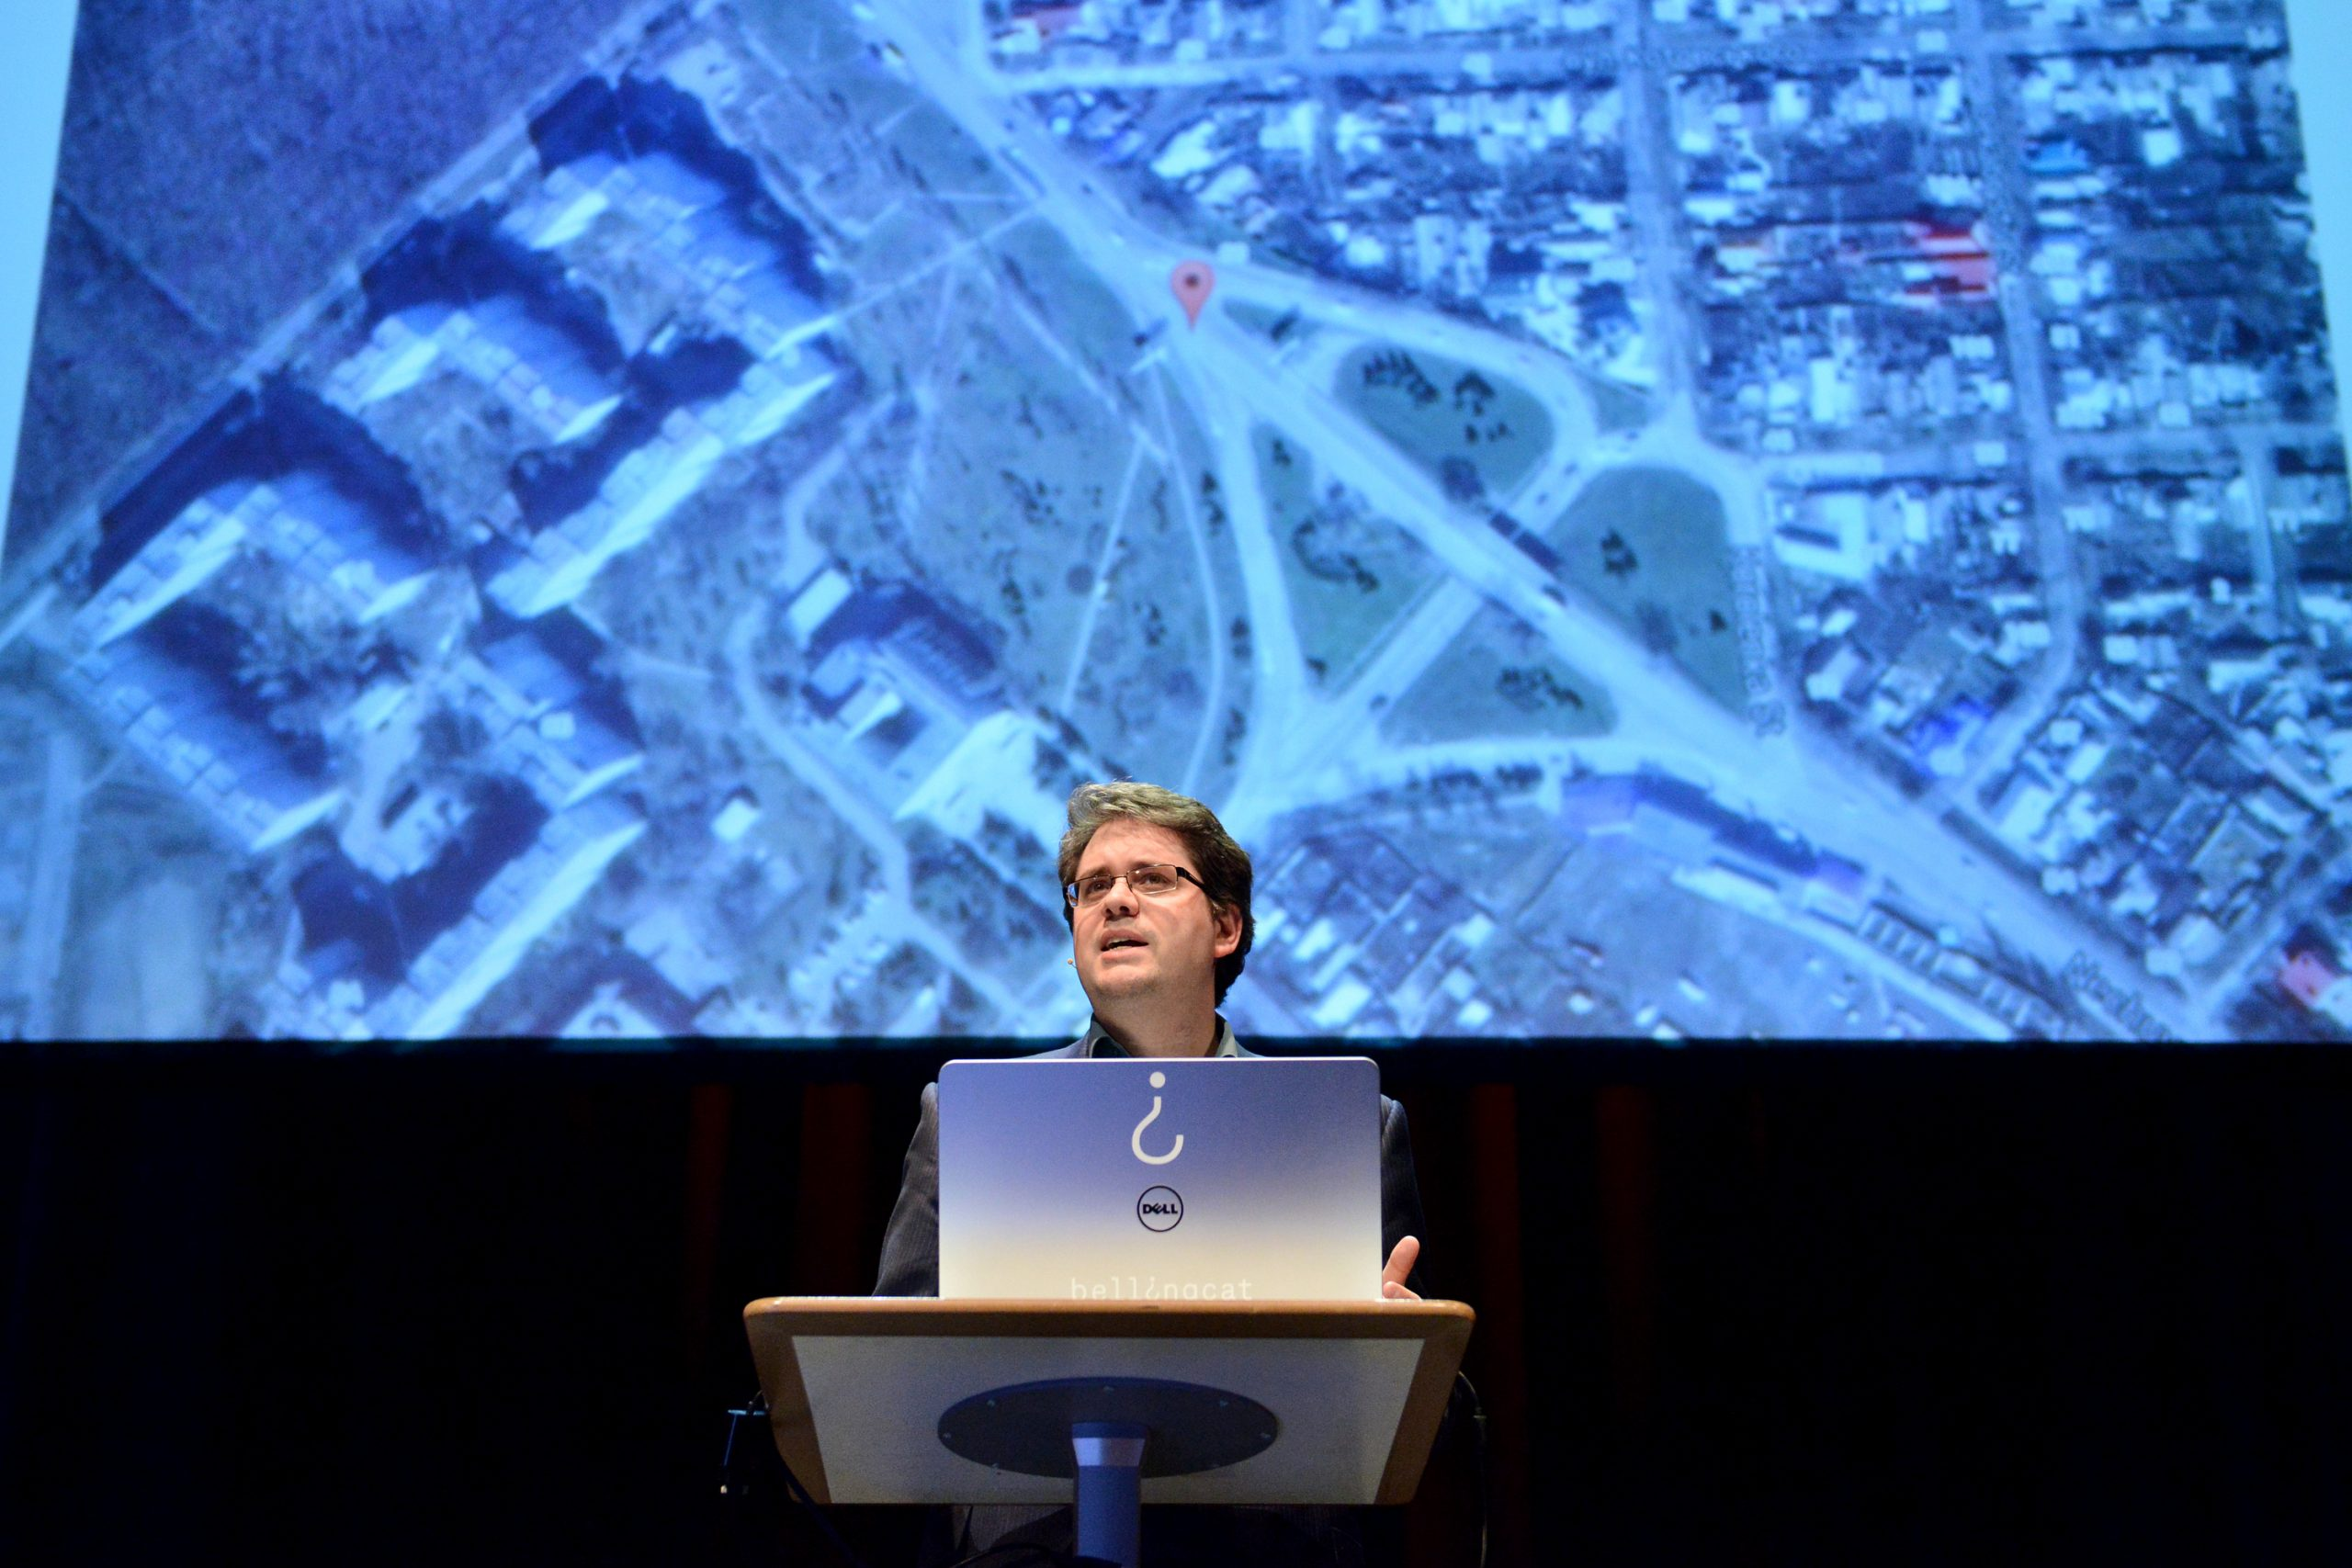 Bellingcat Founder Eliot Higgins on Finding Truth in a World of Disinformation